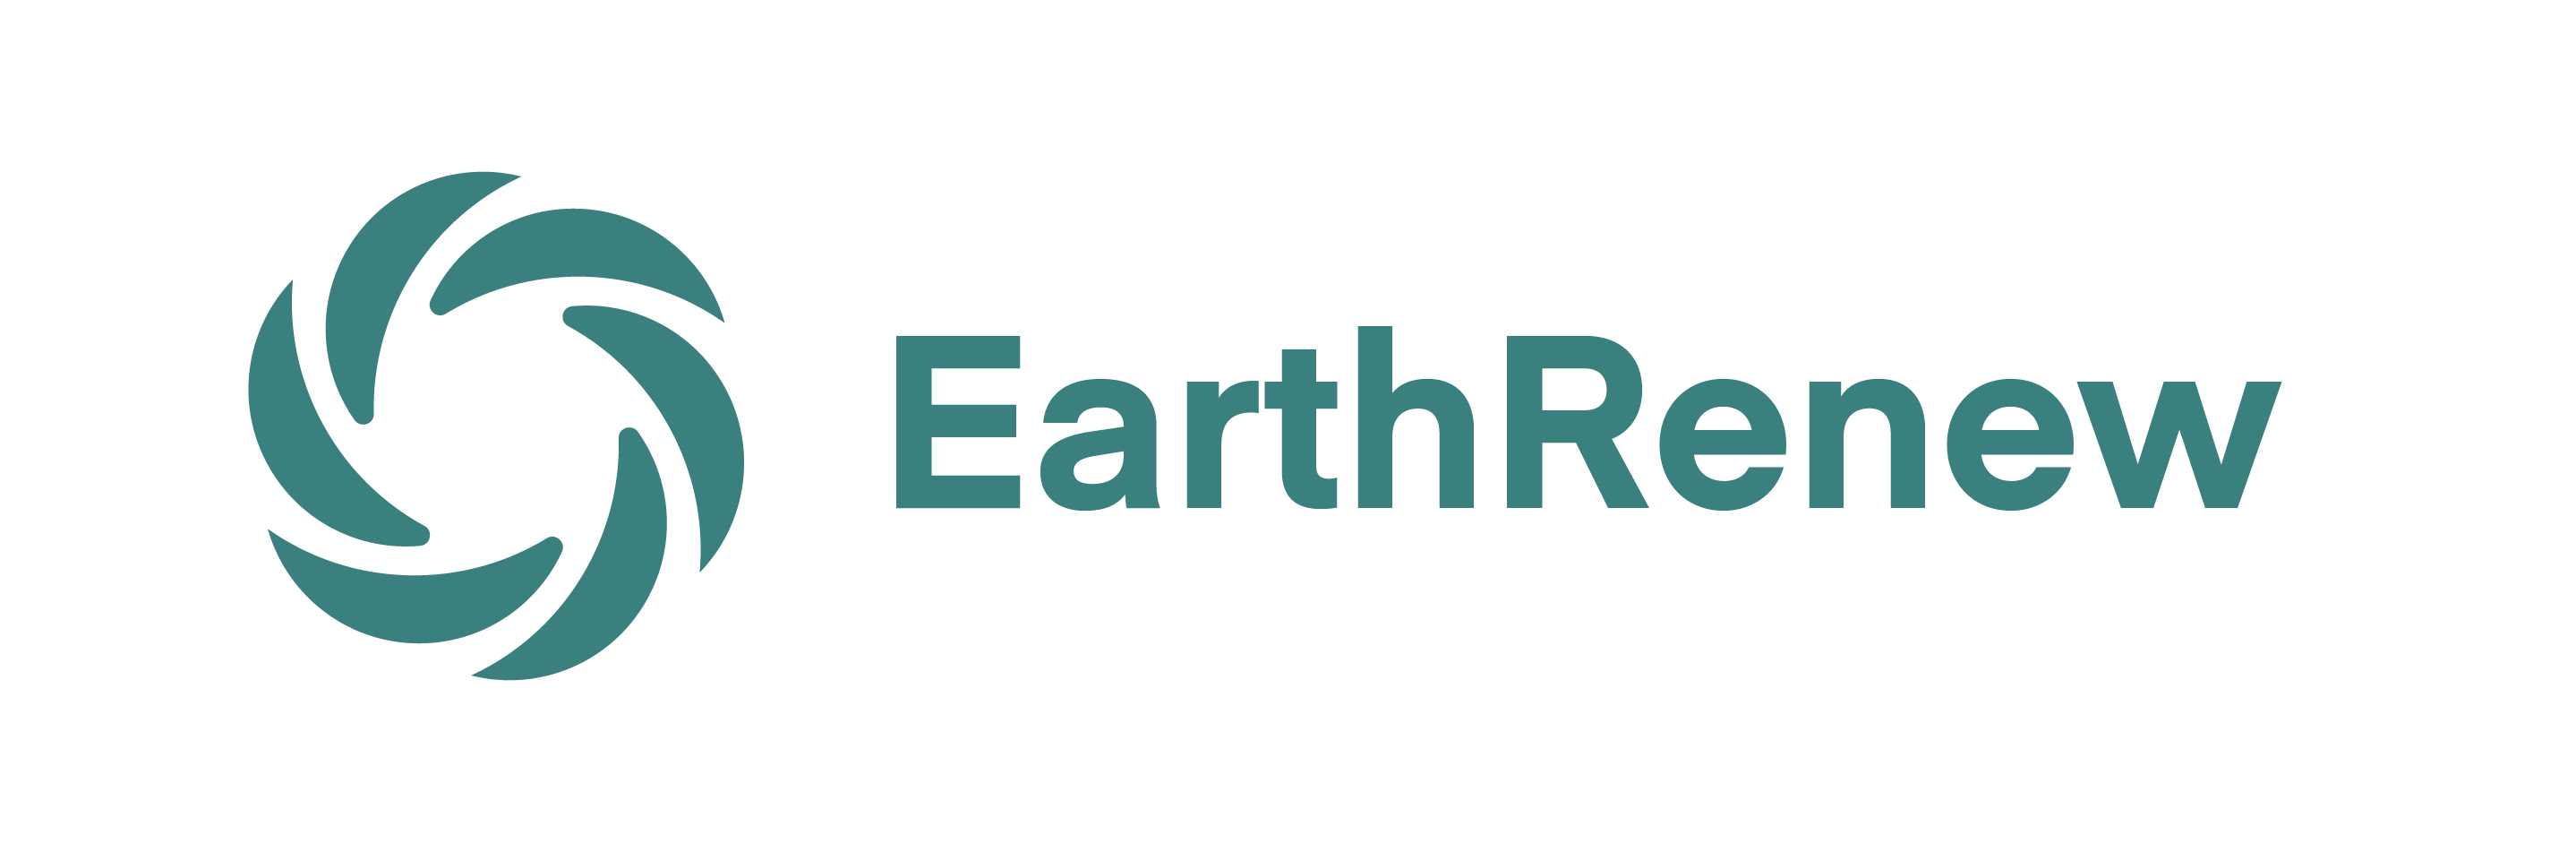 EarthRenew Upsizes Its Previously Announced Proposed Acquisition of Replenish Nutrients Equity From 38% to 100%